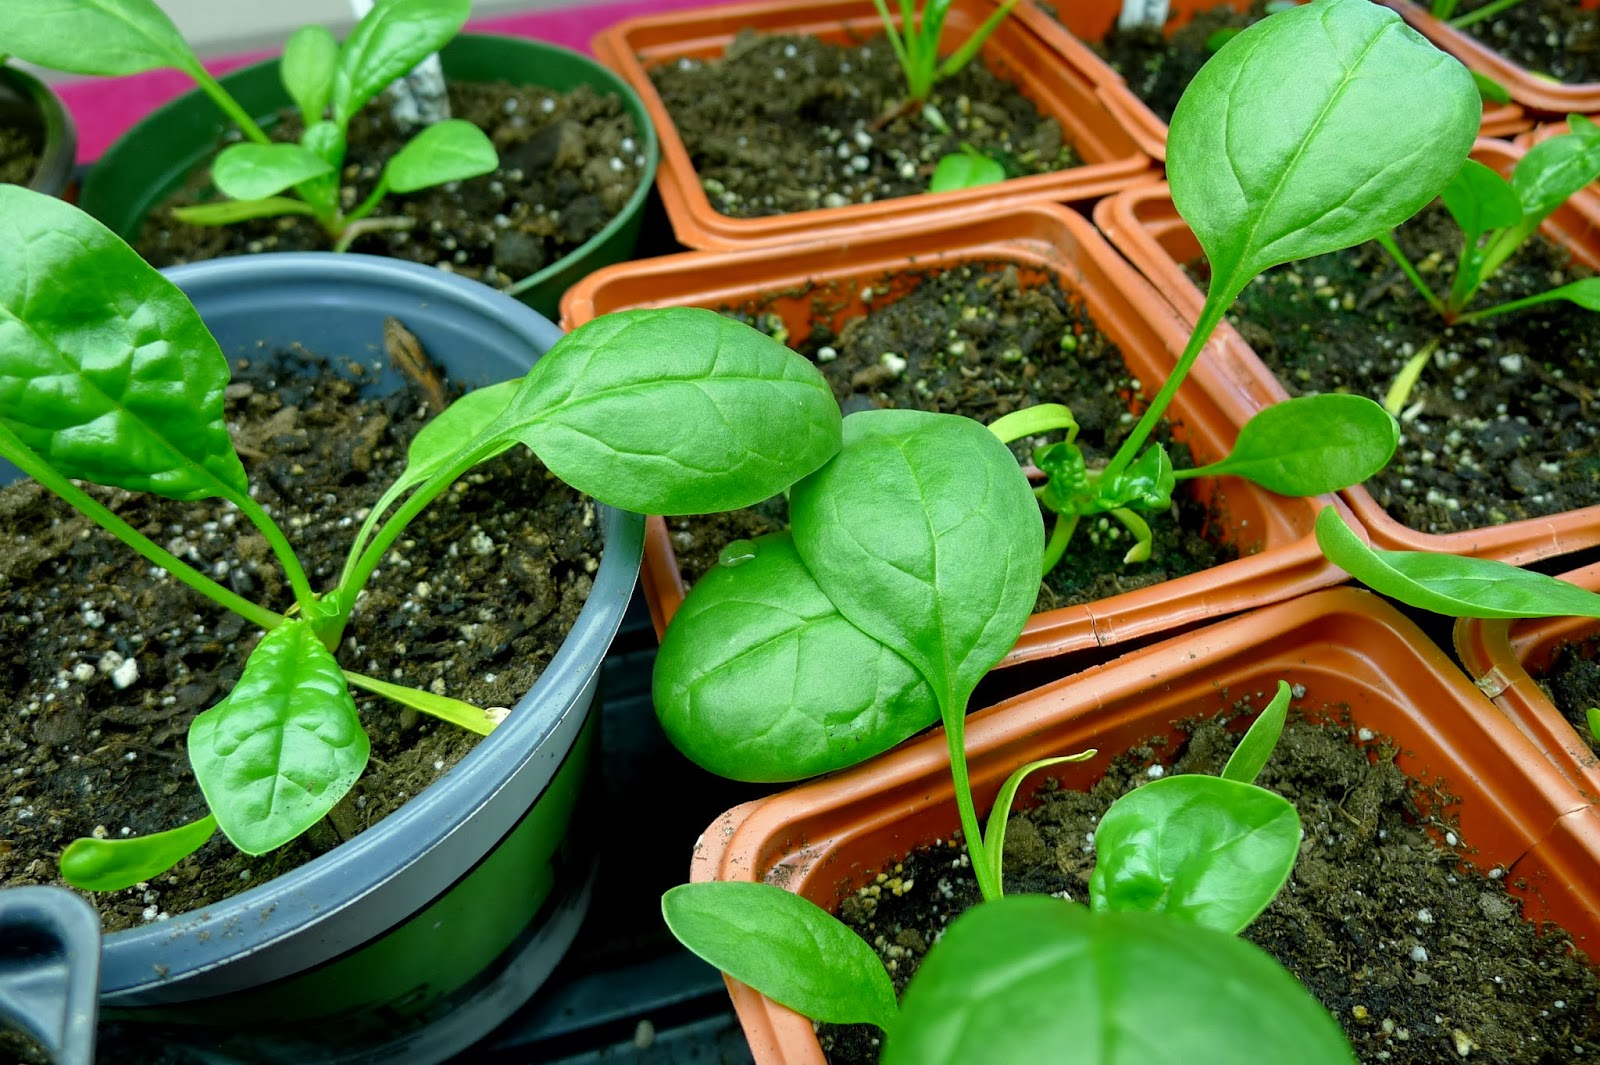 Spinach bolting under grow lights